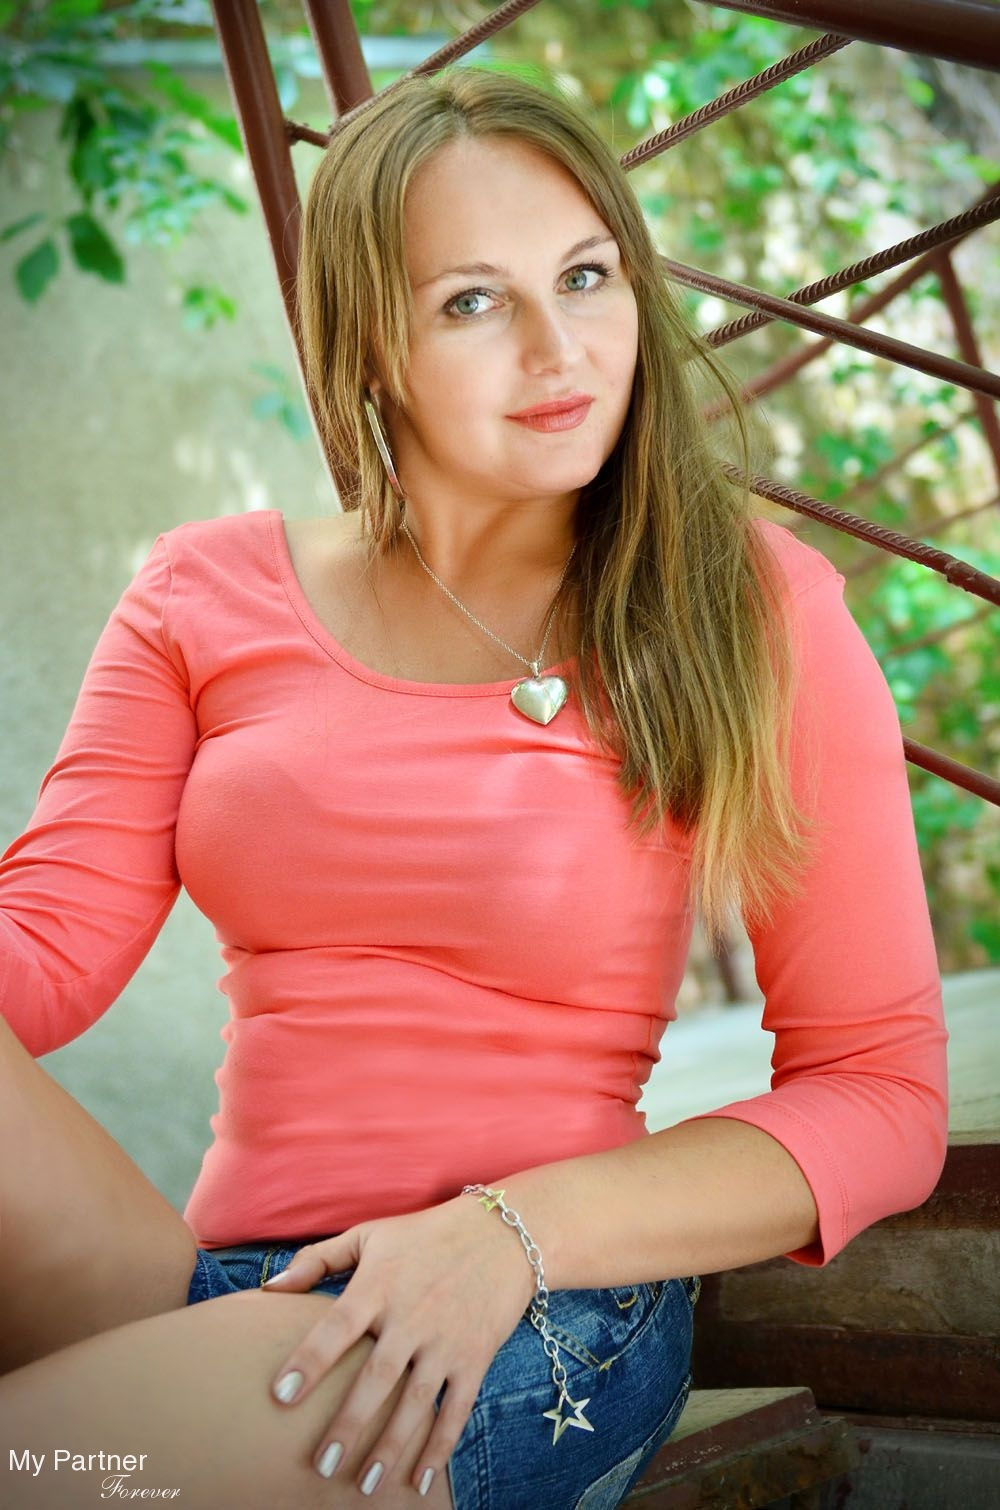 matsumoto divorced singles personals Dating over 40 fifty the death of dating i blog about divorce, dating, life and love over 40 at roundan why is there this hidden stigma to online dating.